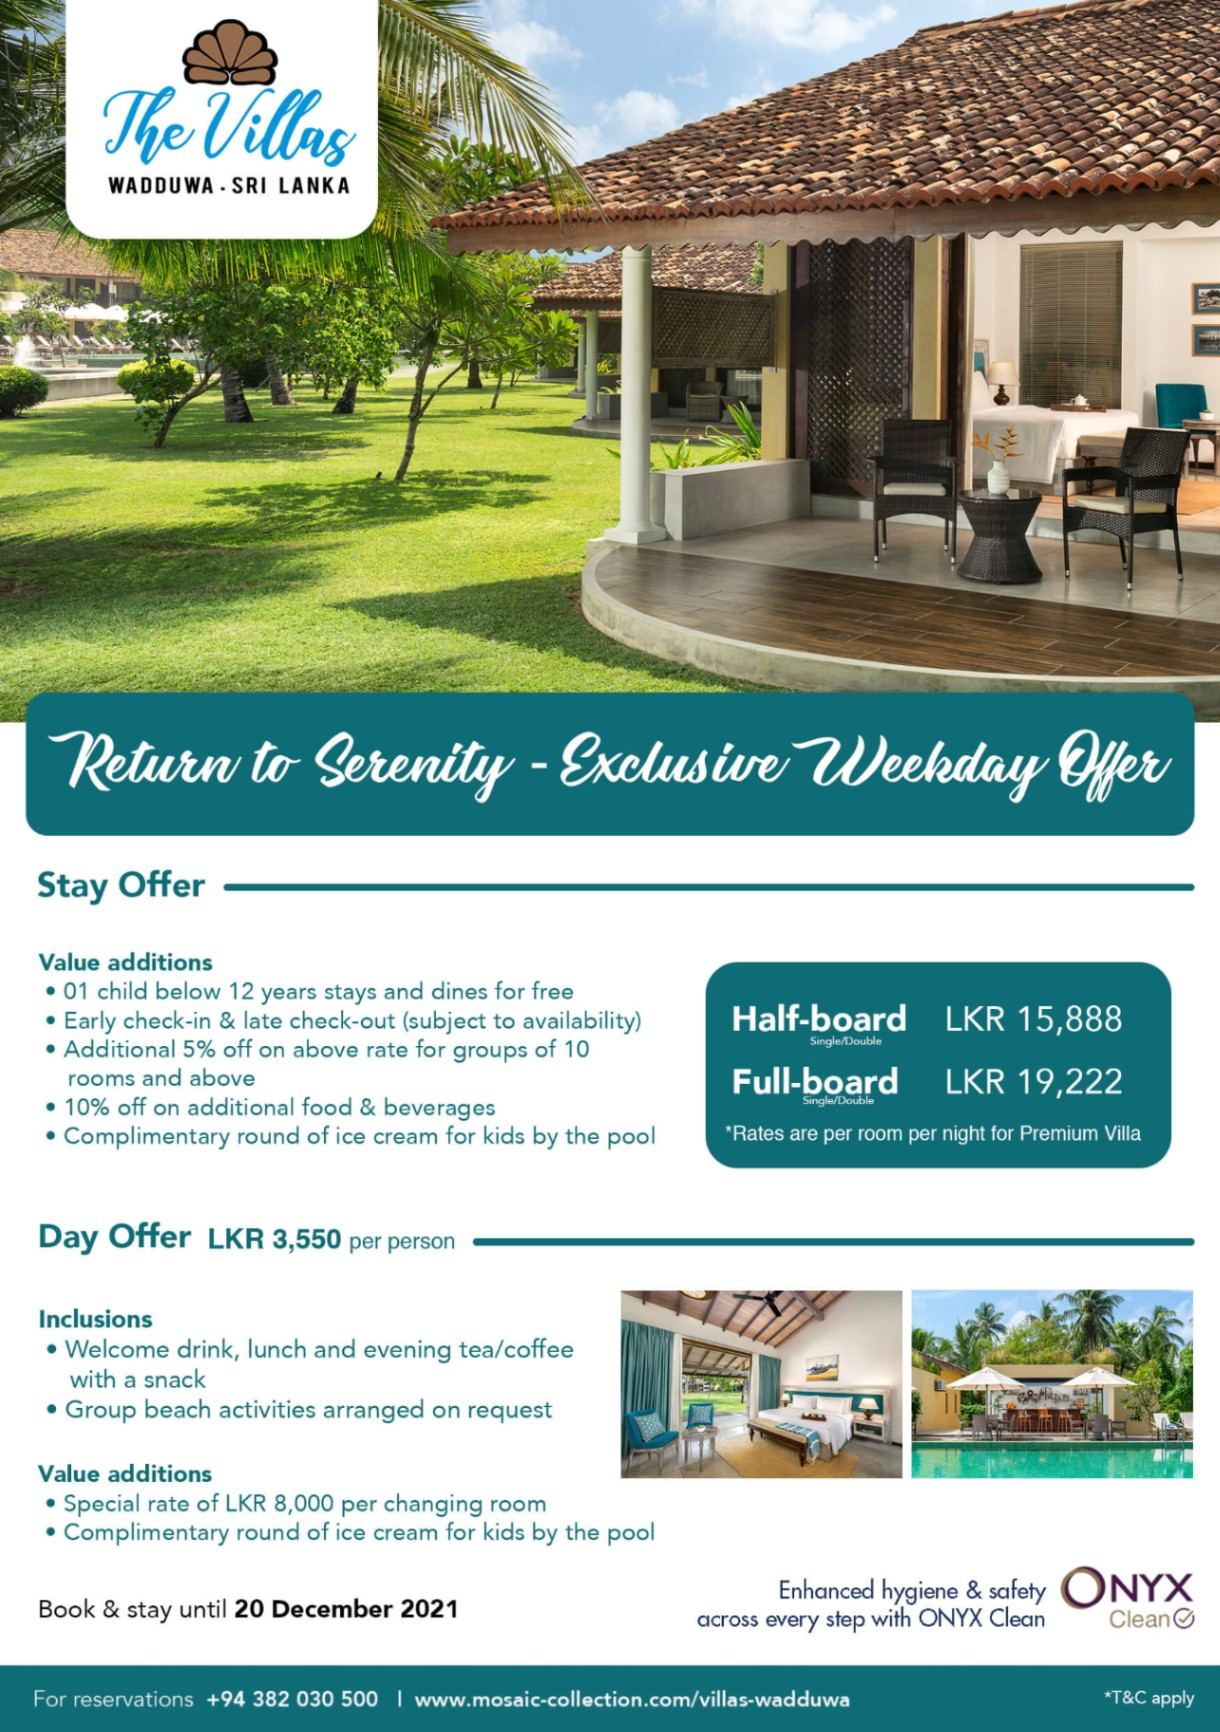 Return to serenity - exclusive weekday offer